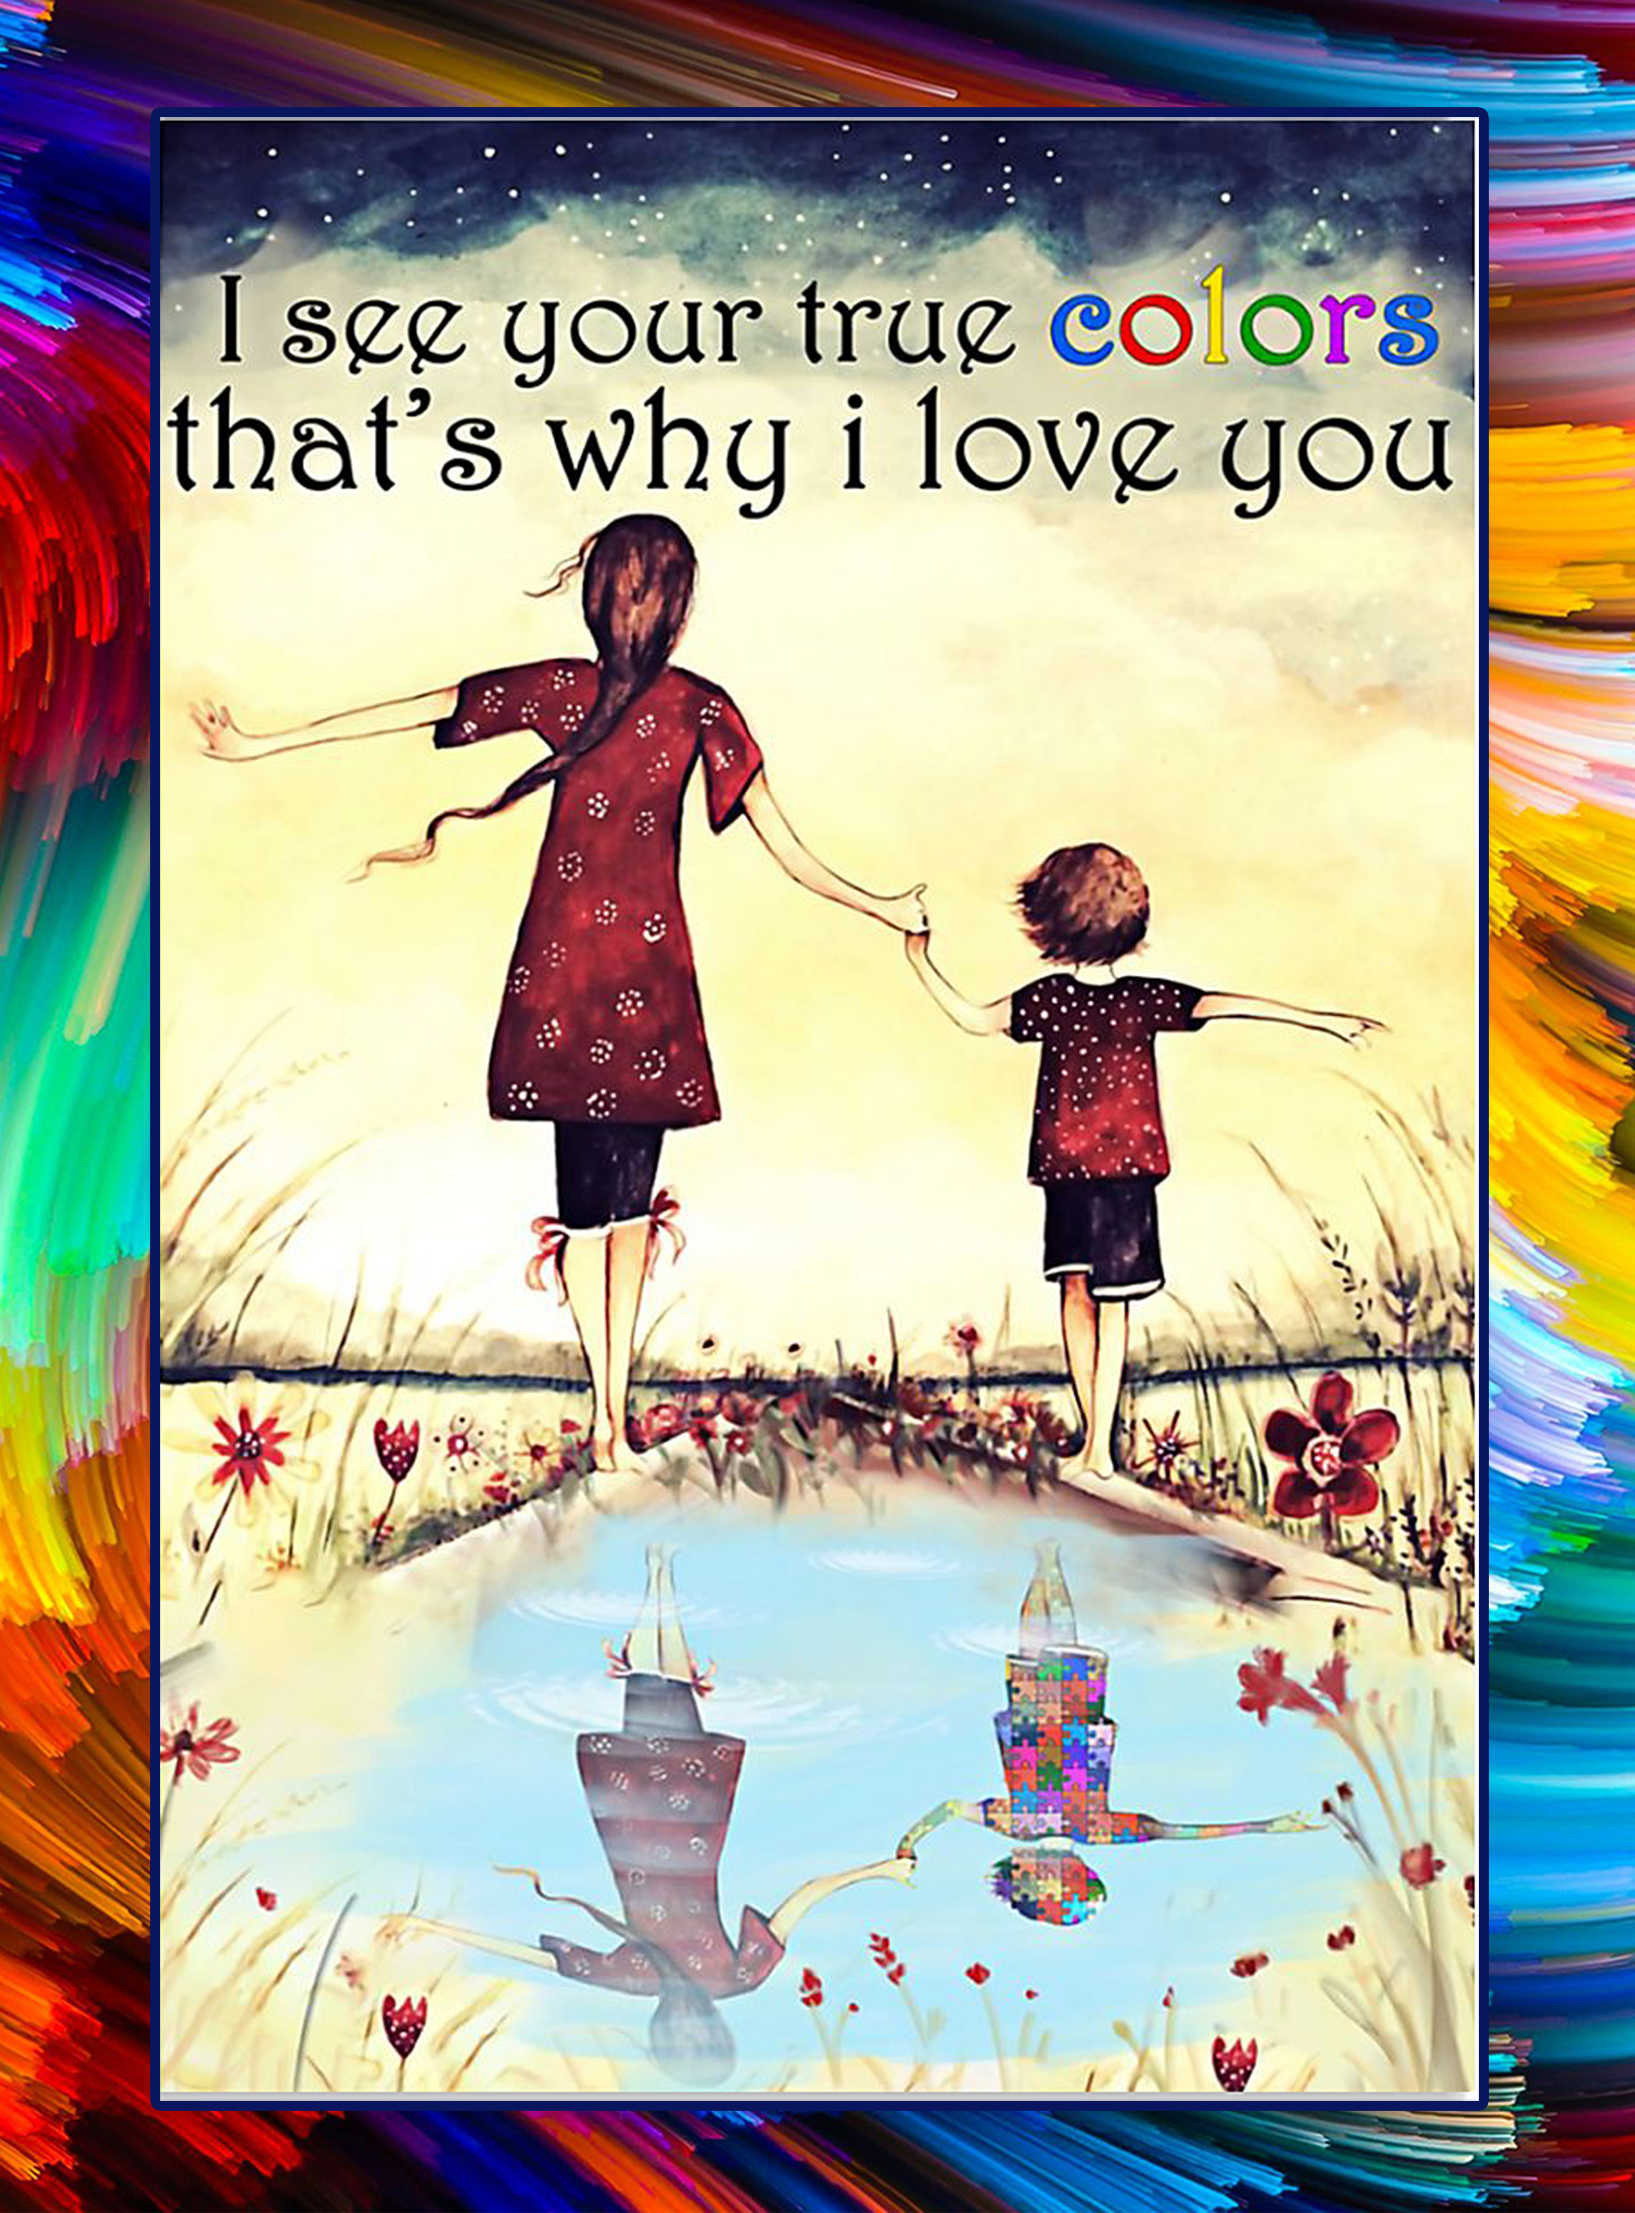 I see your true colors autism poster - A3